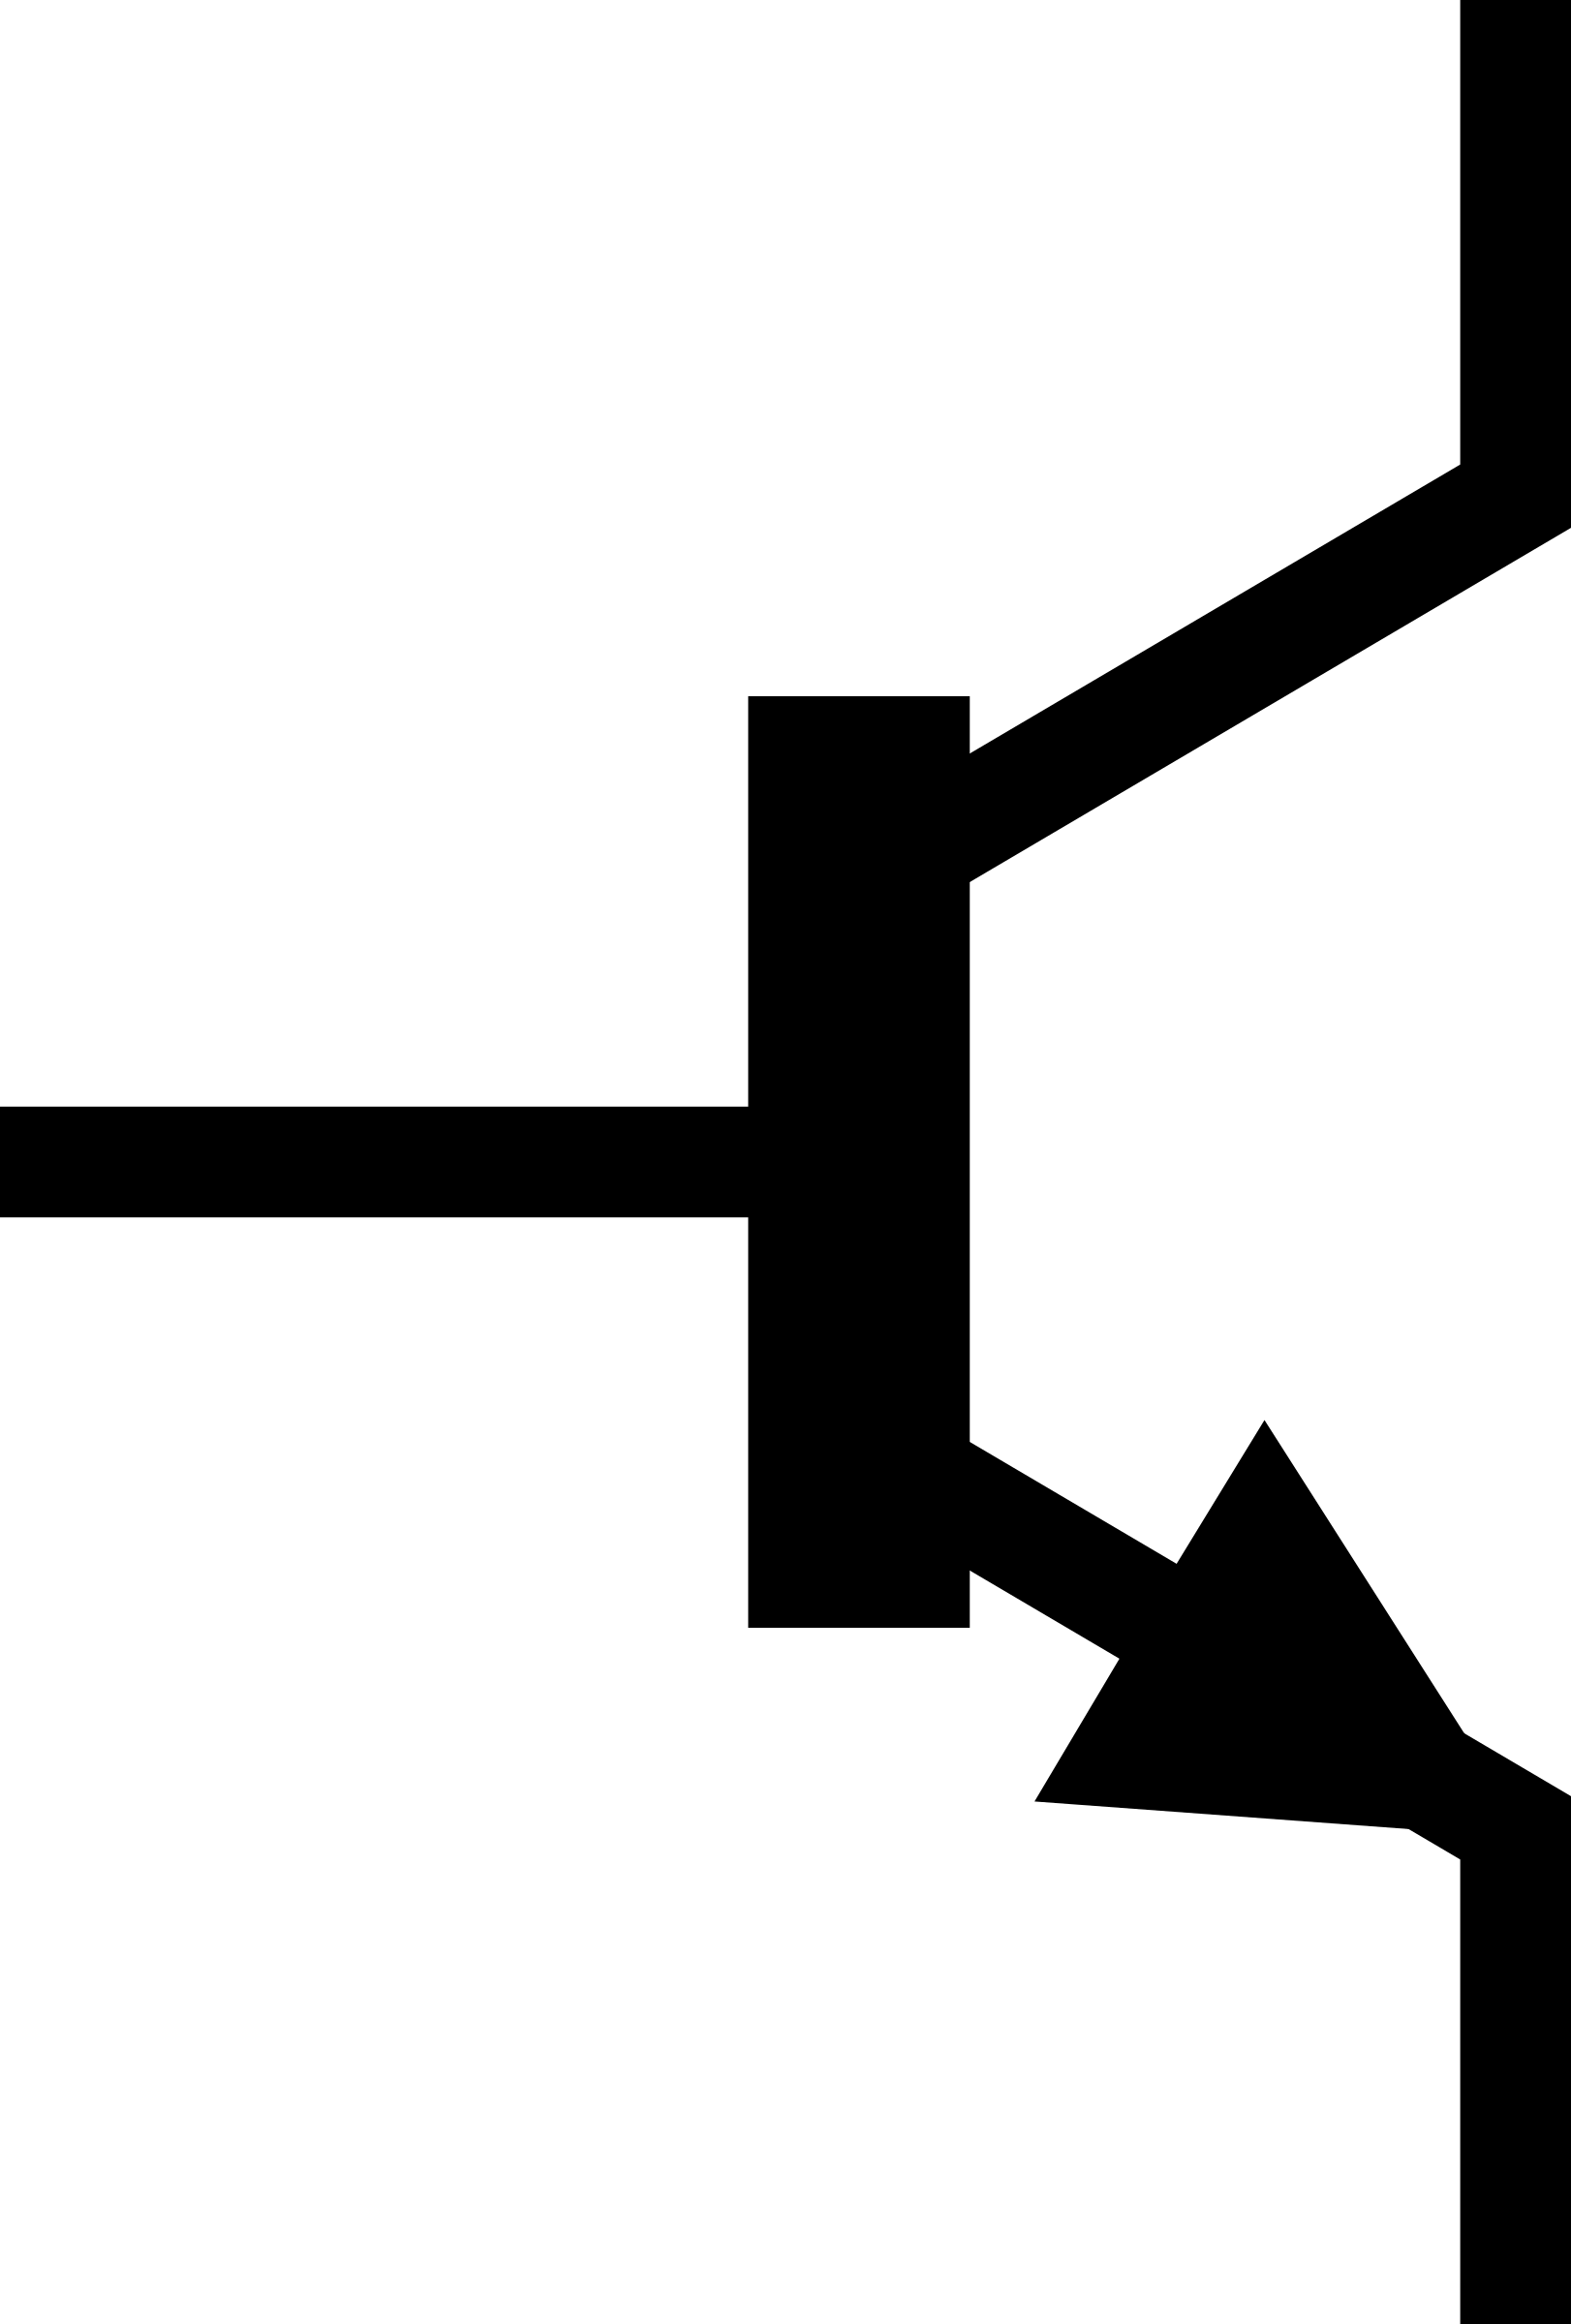 IEC NPN Transistor Symbol, alternate by vermeil